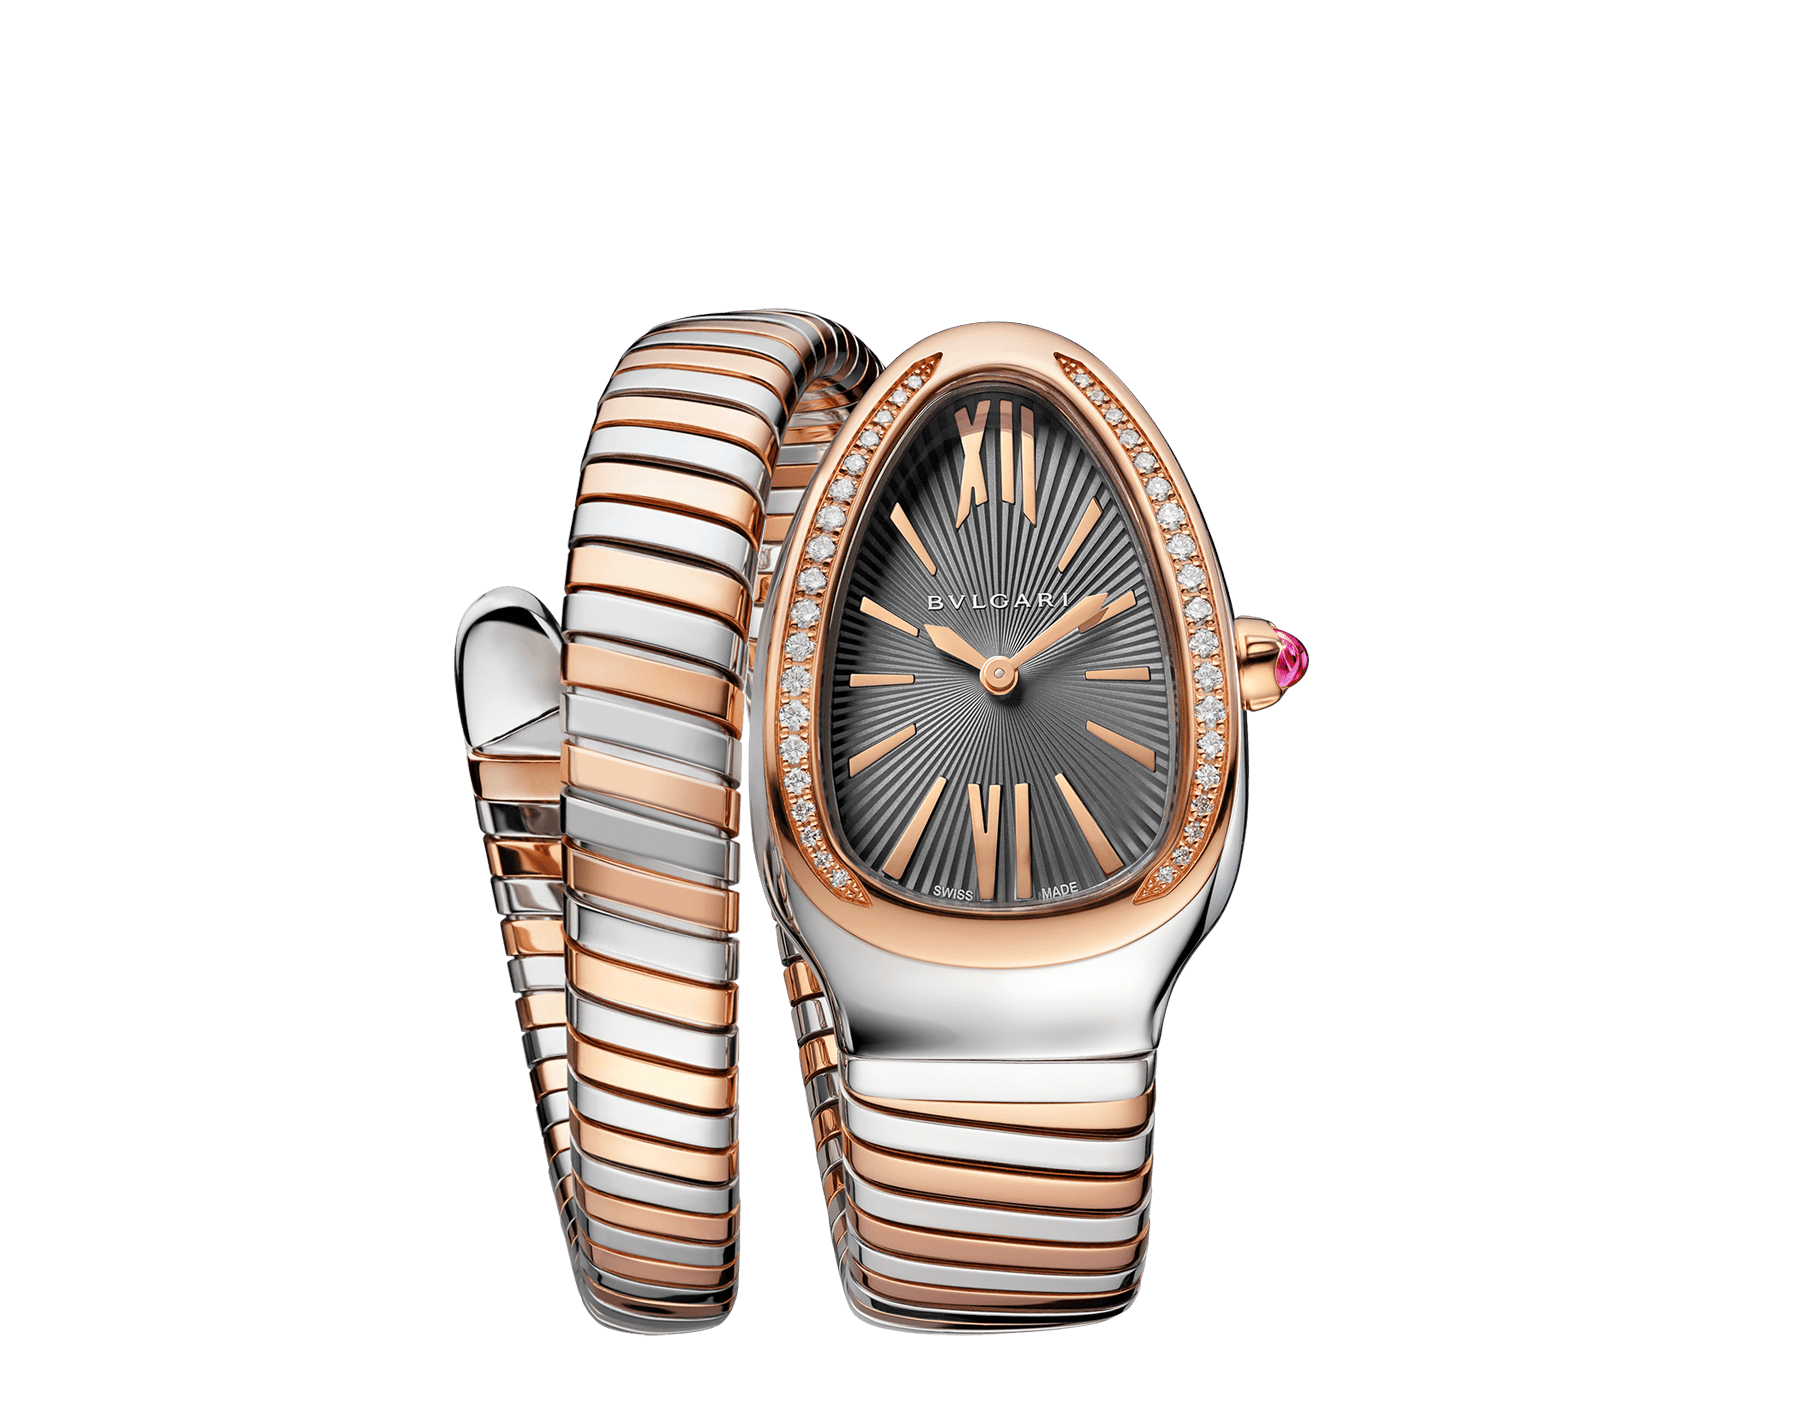 Serpenti Tubogas single spiral watch with stainless steel case, 18 kt rose gold bezel set with brilliant cut diamonds, grey lacquered dial, 18 kt rose gold and stainless steel bracelet. 102681 image 1